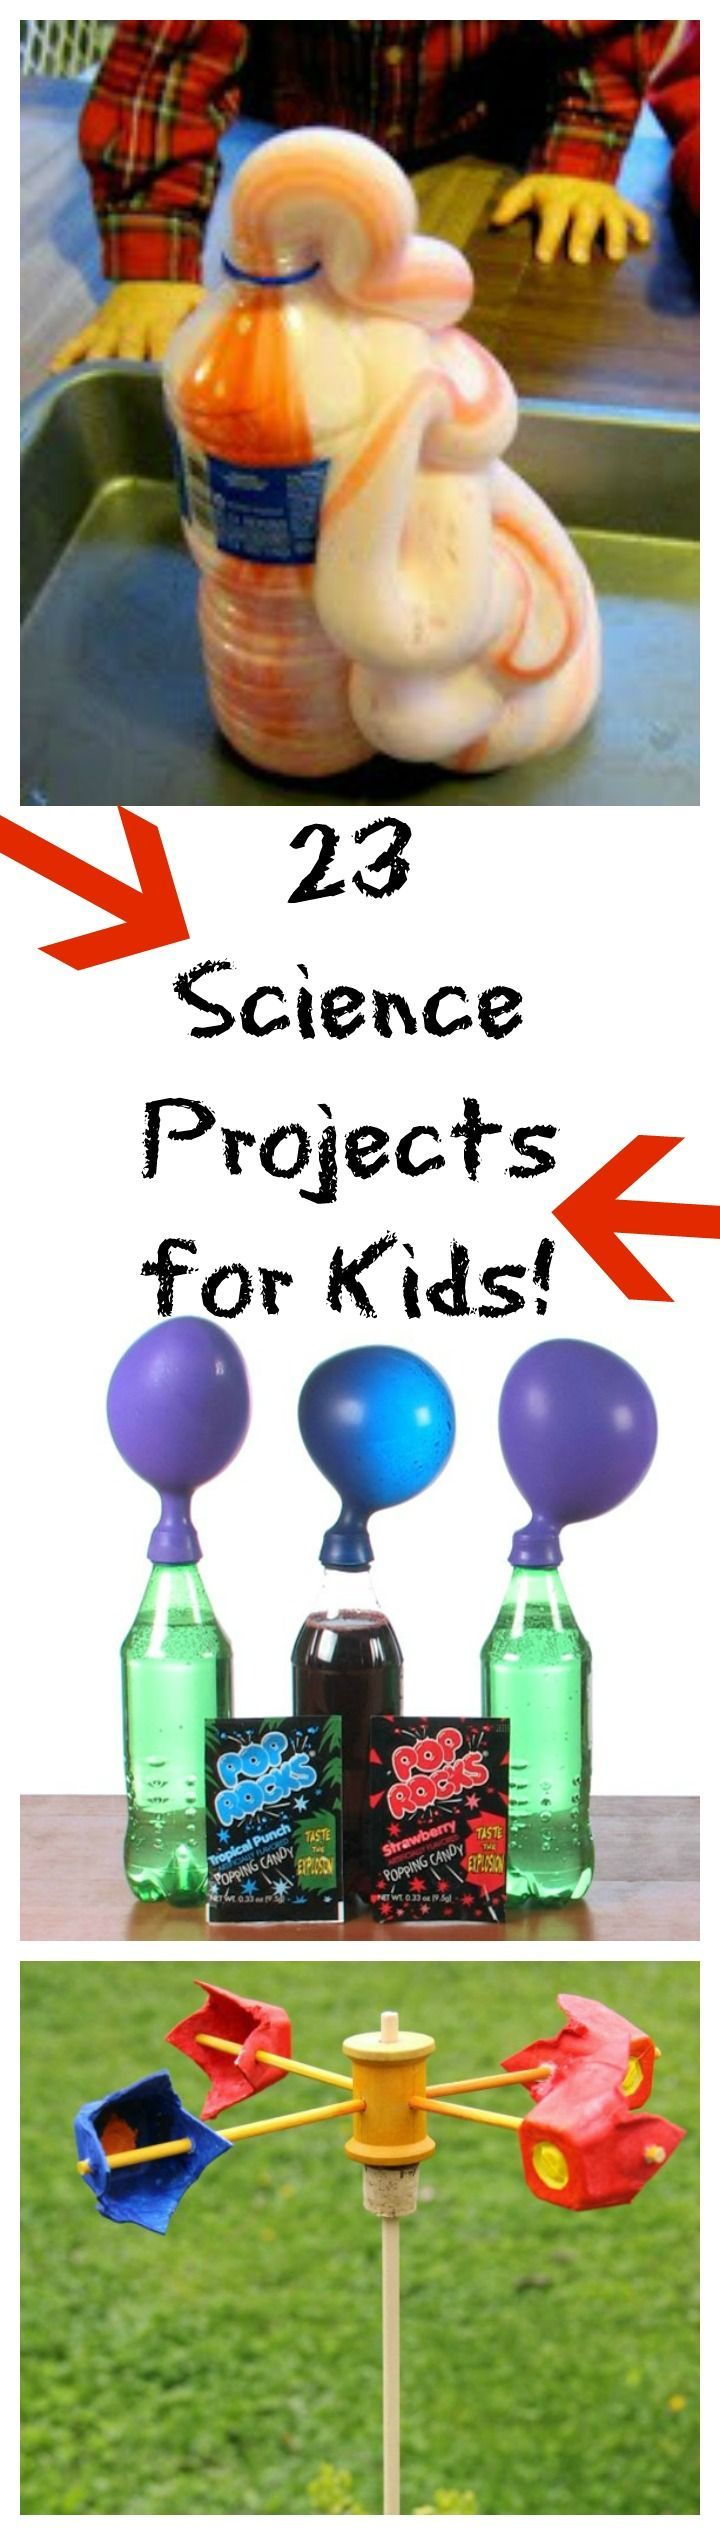 23 science projects for kids summer activities and craft